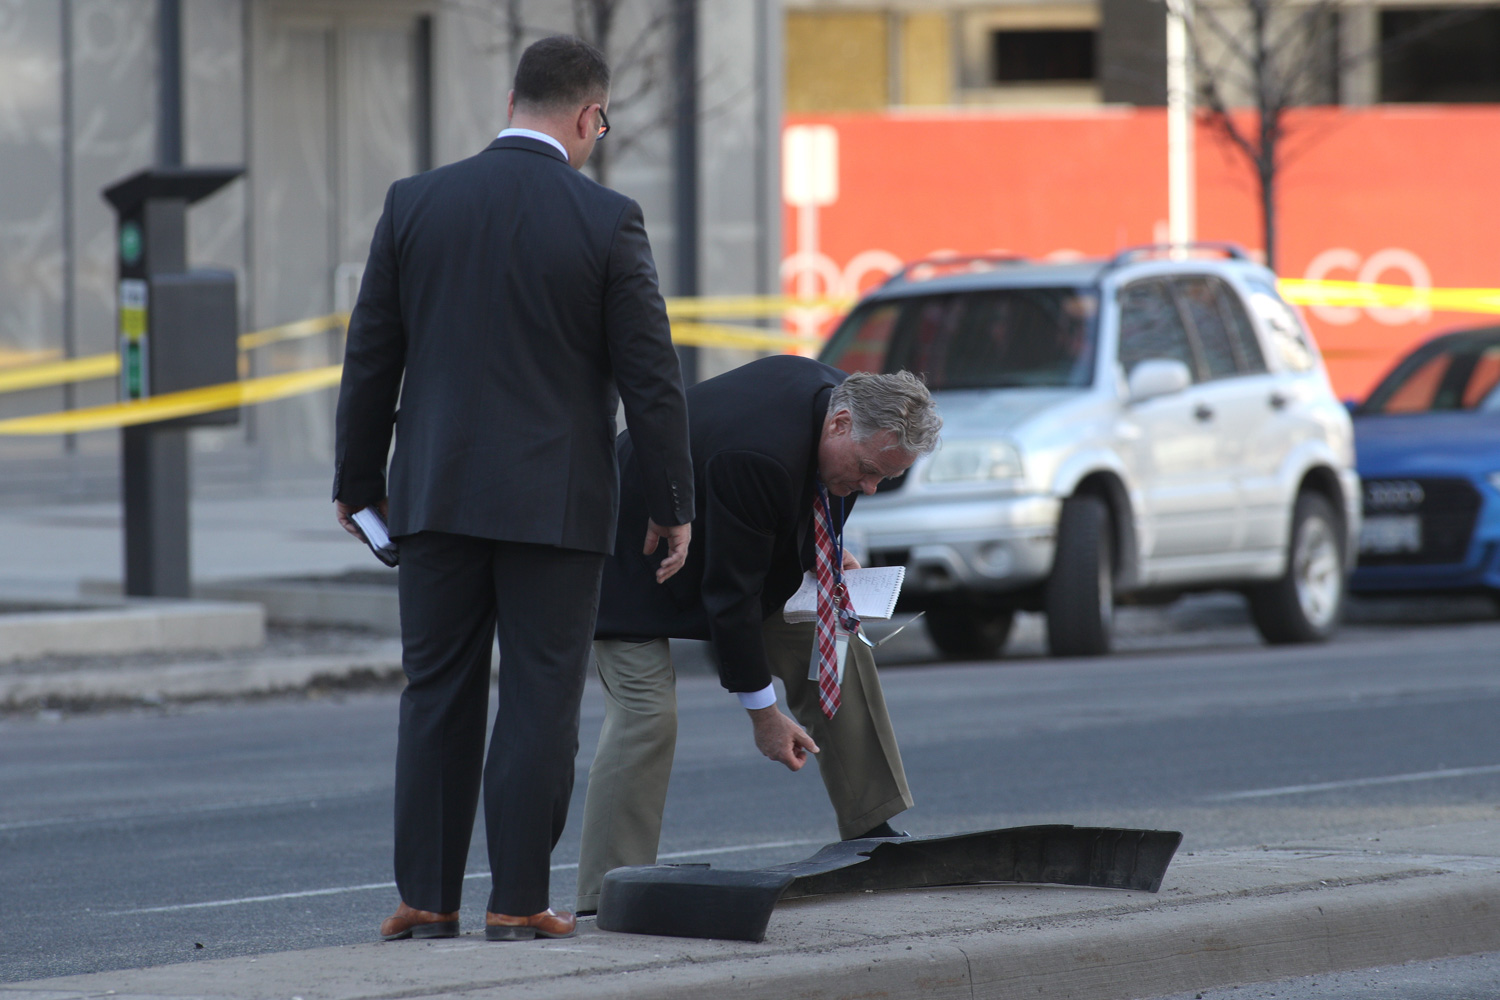 """<div class=""""meta image-caption""""><div class=""""origin-logo origin-image none""""><span>none</span></div><span class=""""caption-text"""">Forensic police officers look a car bumper after a truck drove up on the curb and hit several pedestrians in Toronto, Ontario, on April 23, 2018. (Lars Hagberg/AFP/Getty Images)</span></div>"""